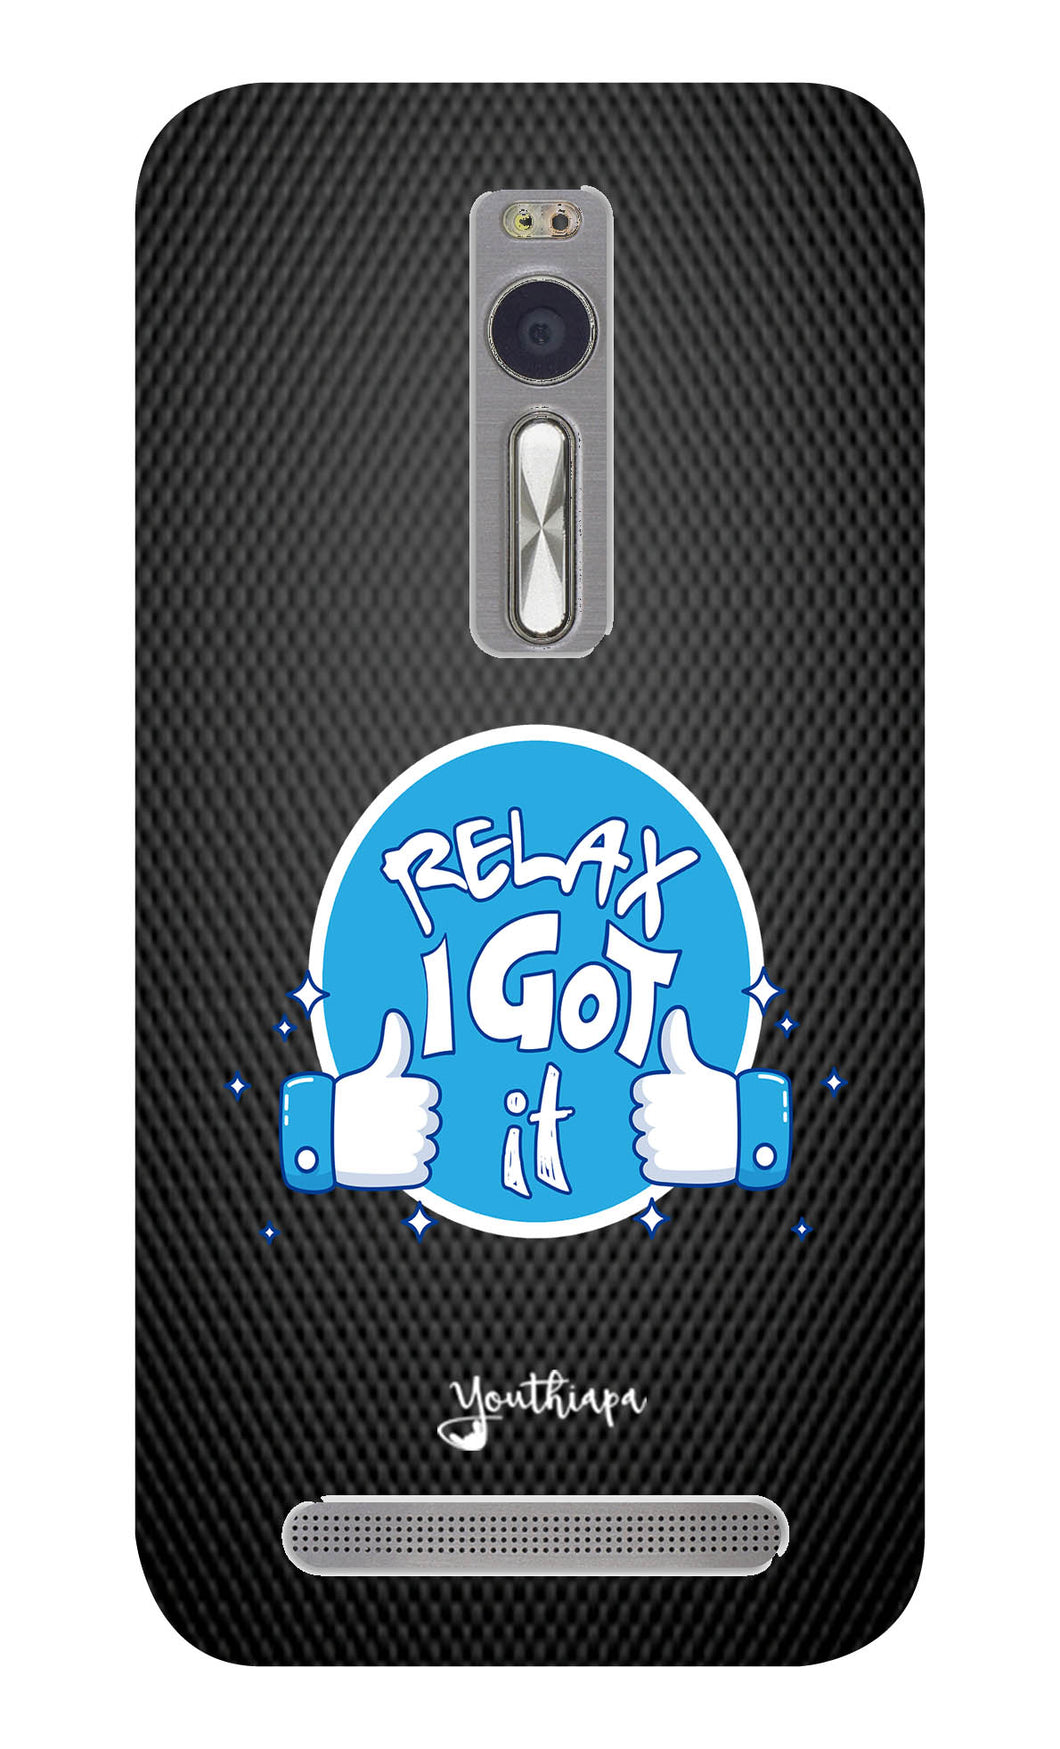 Relax edition for Asus Zenfone 2